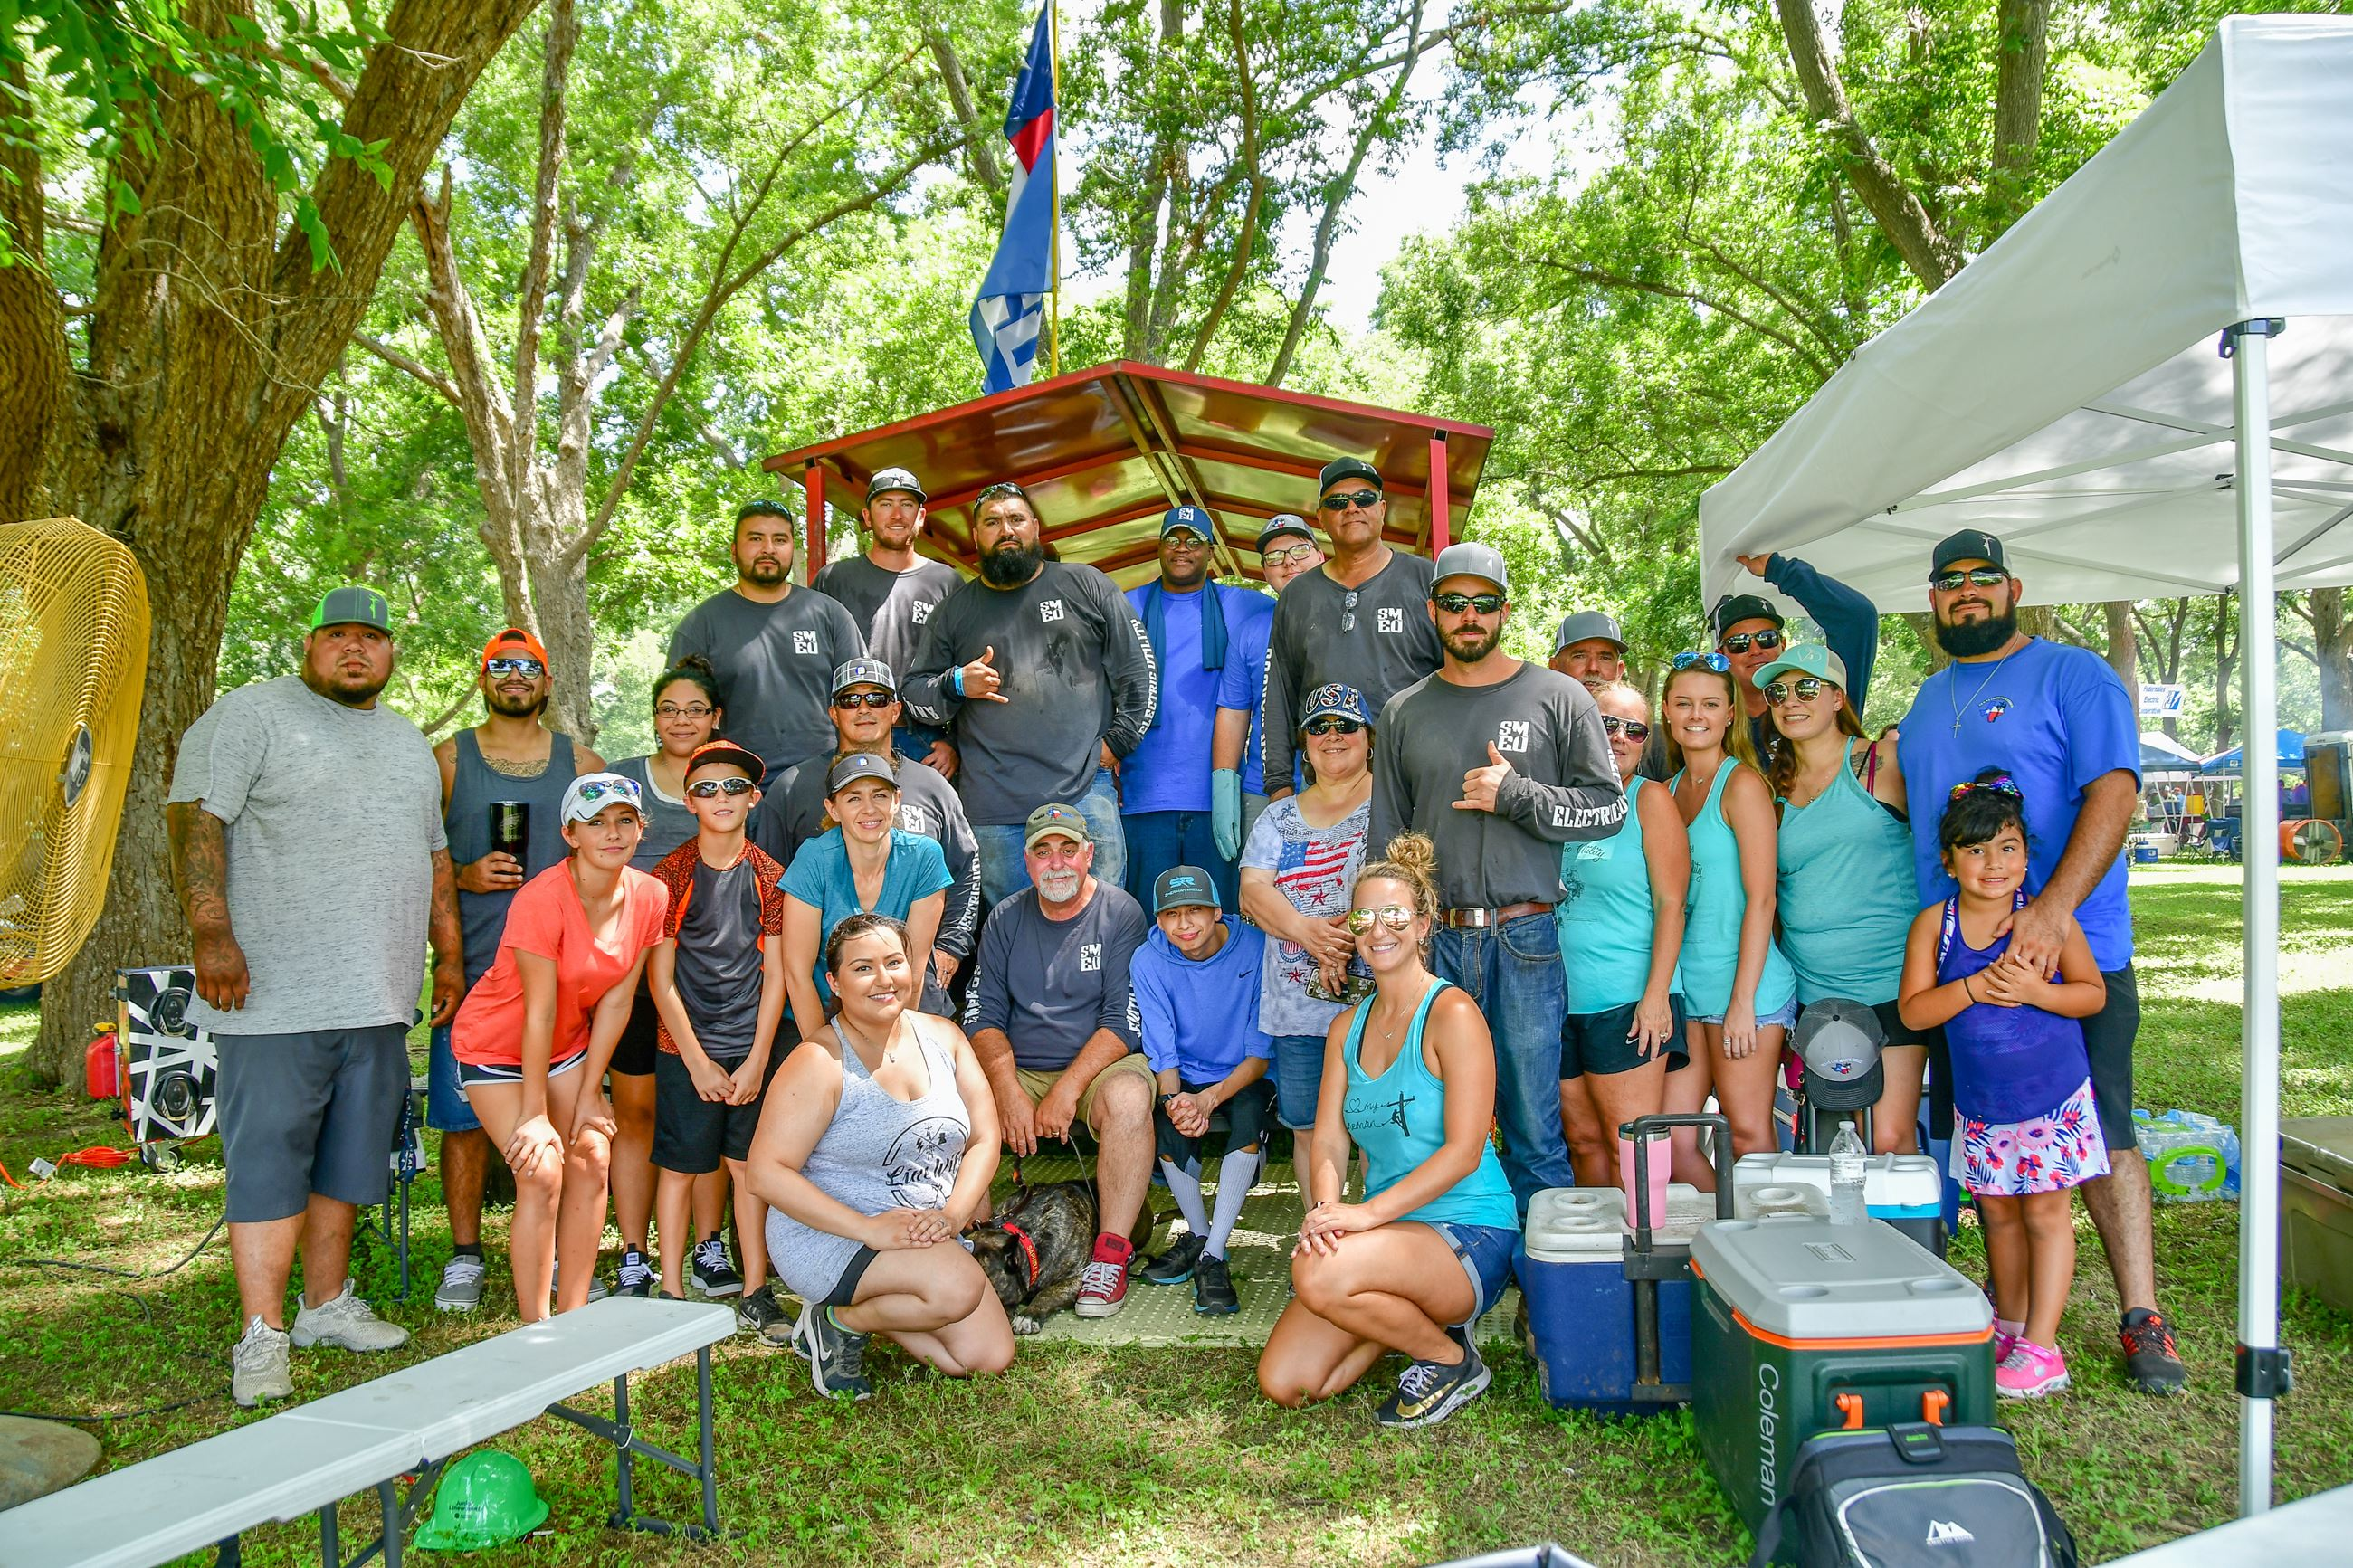 2019 Texas Lineman's Rodeo Group photo